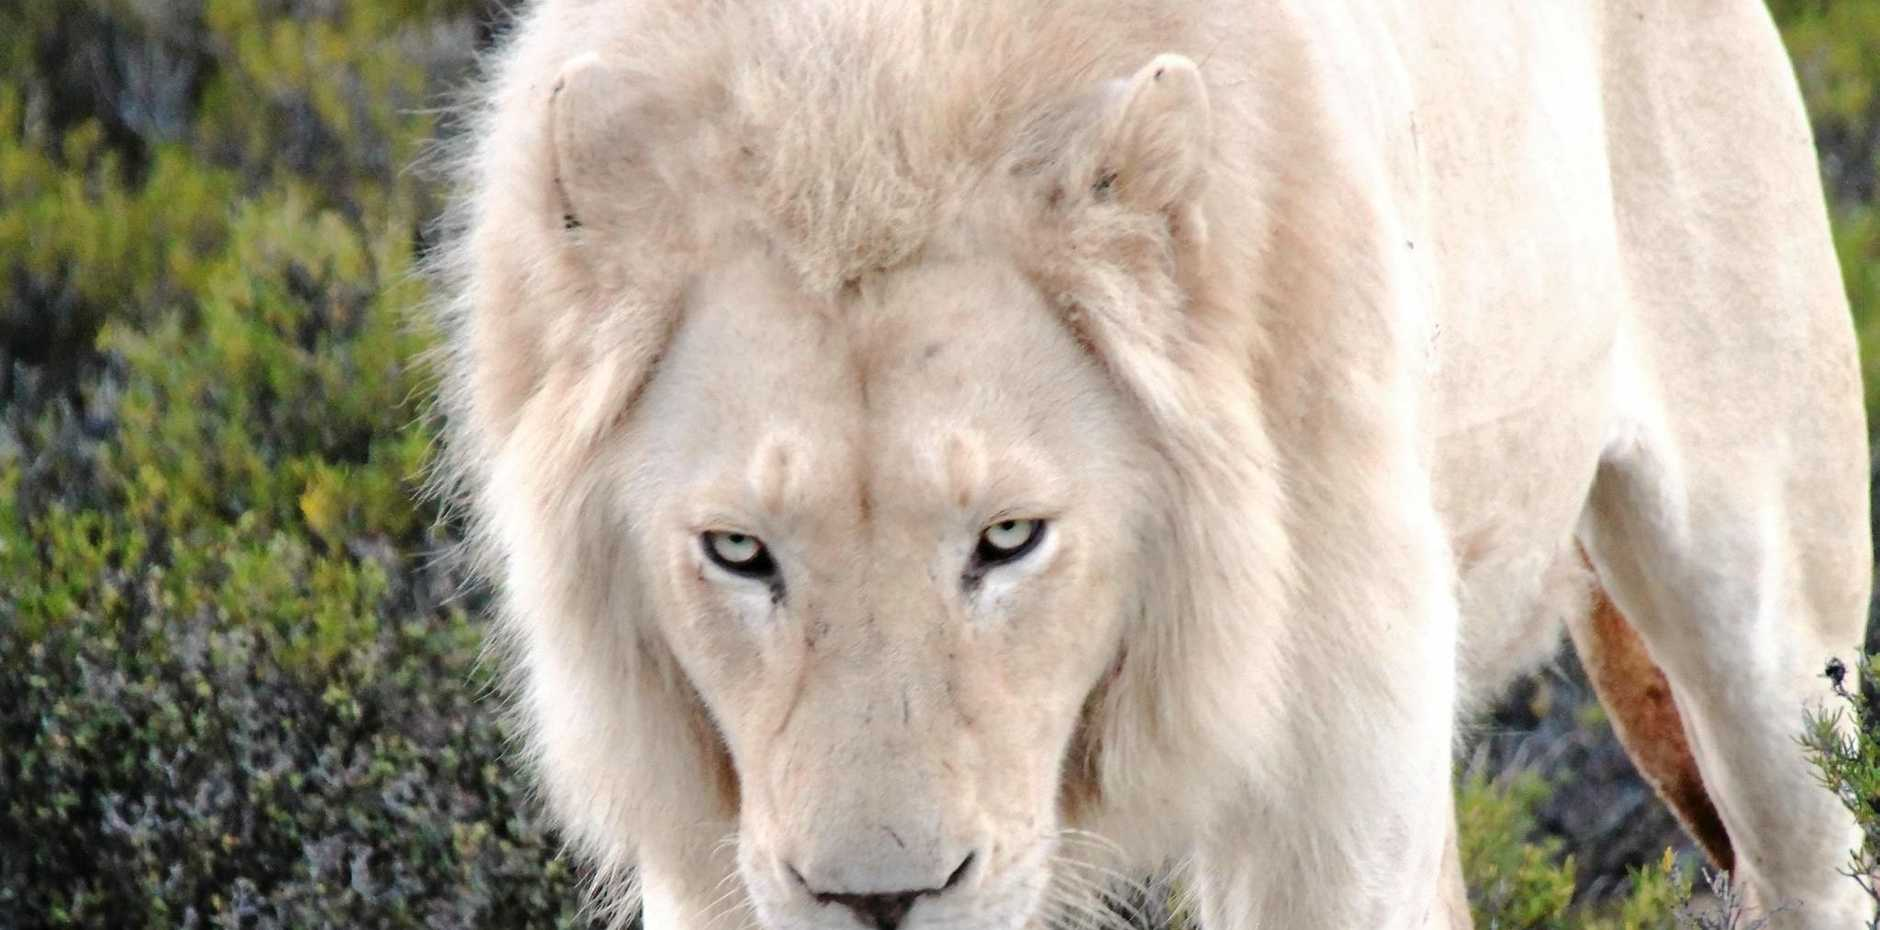 A handsome beast: the male white lion.